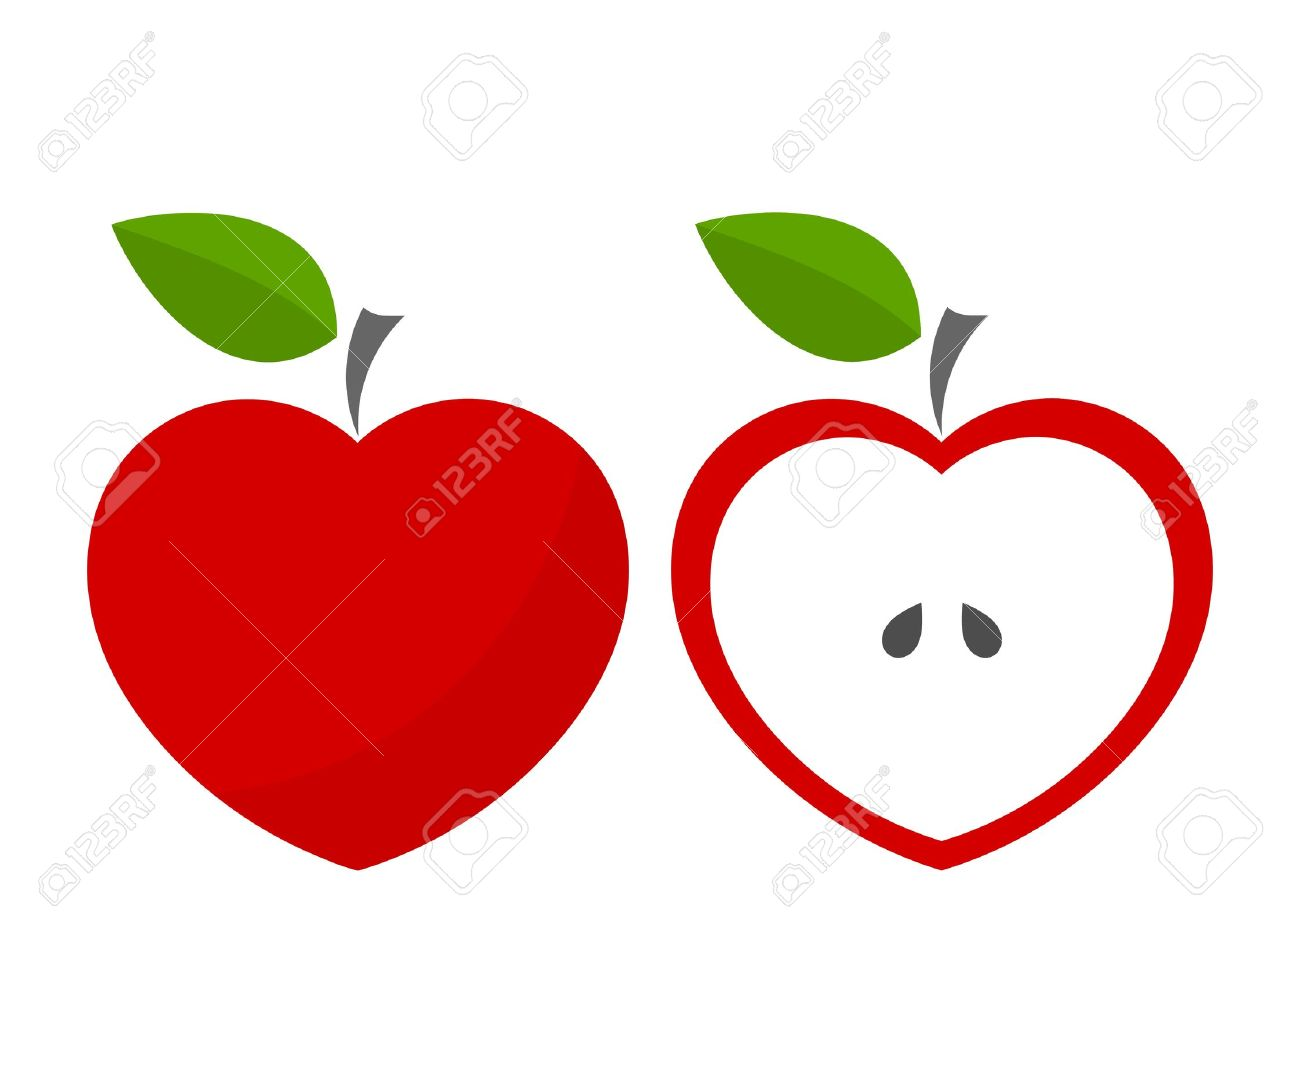 Apple heart clipart 6 » Clipart Station.